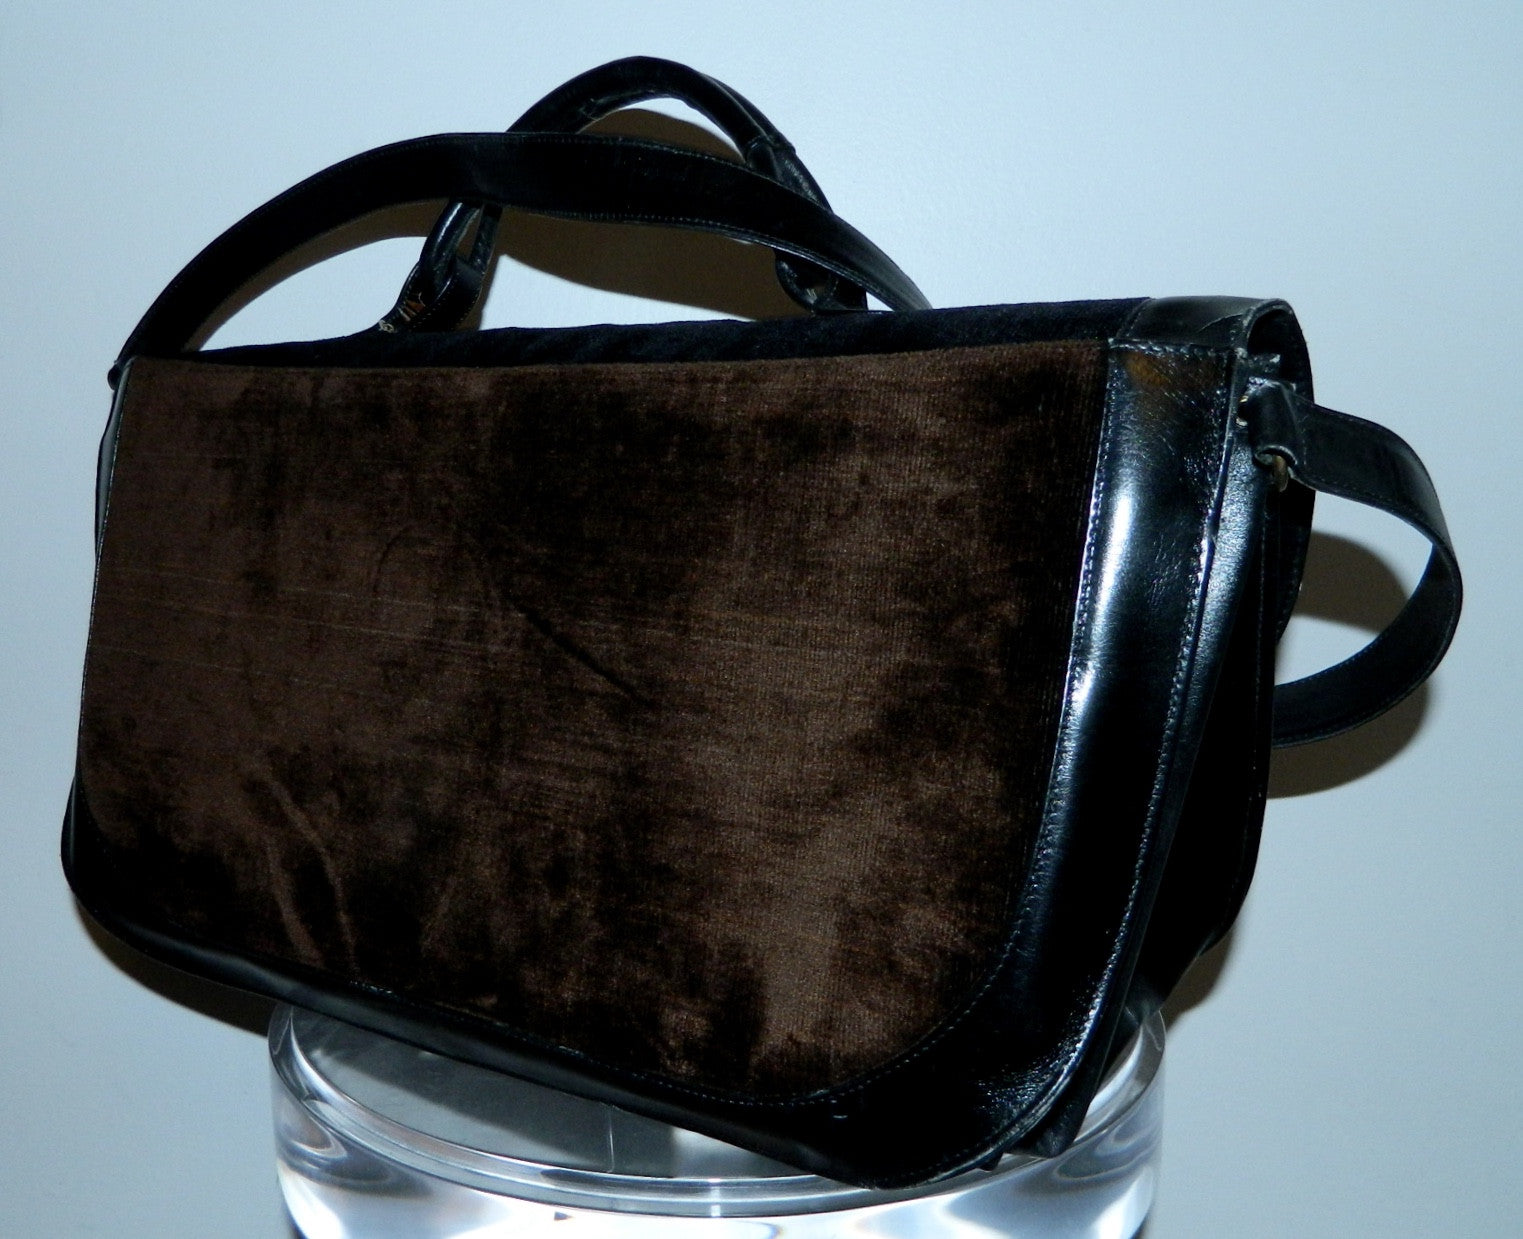 HUGE velvet leather Roberta di Camerino briefcase handbag vintage 1970s carry on bag